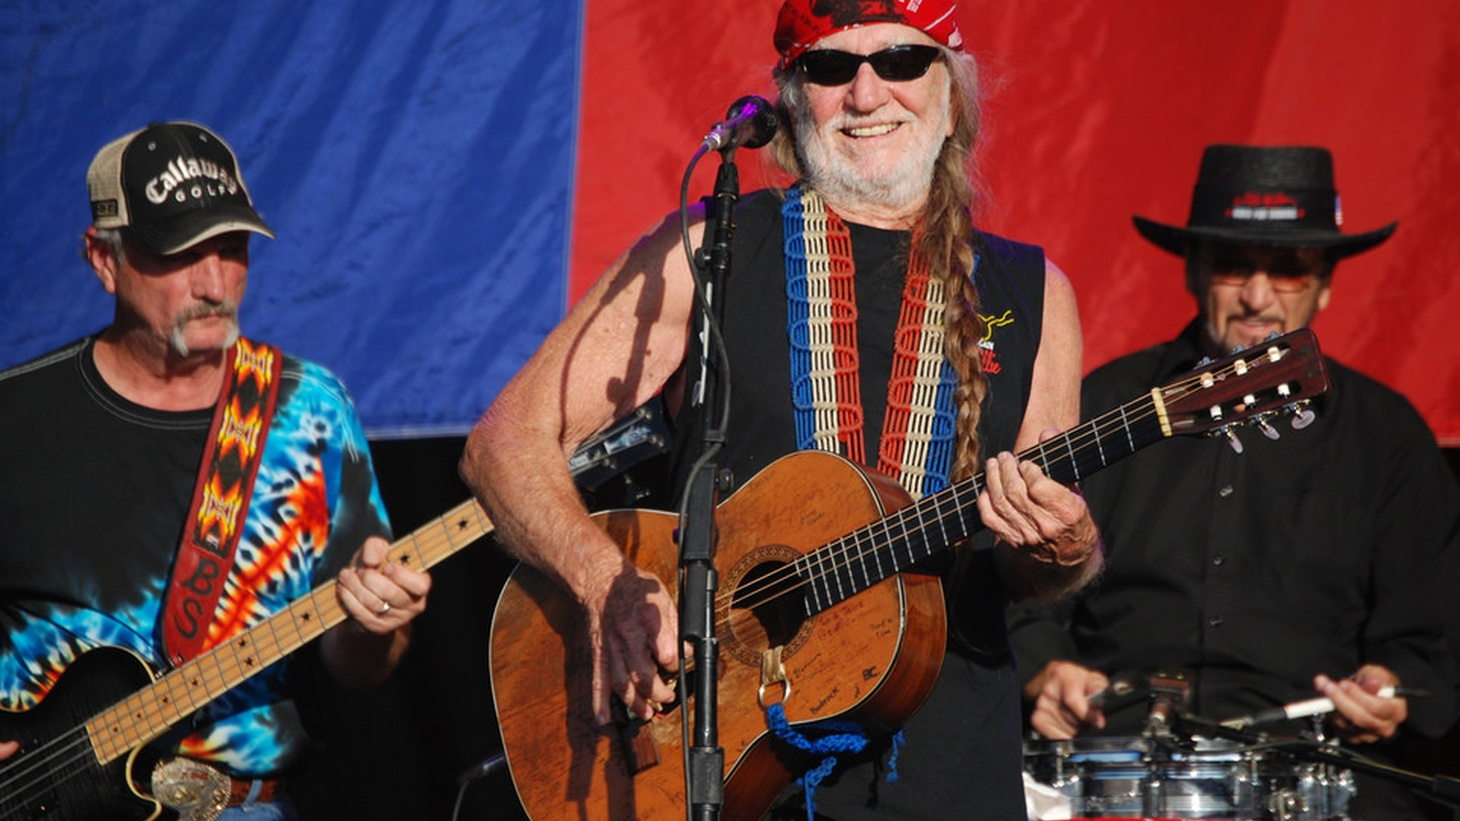 Robert Scheer continues his discussion about music, life, and America with legendary musician Willie Nelson.  (EXPLICIT LANGUAGE)